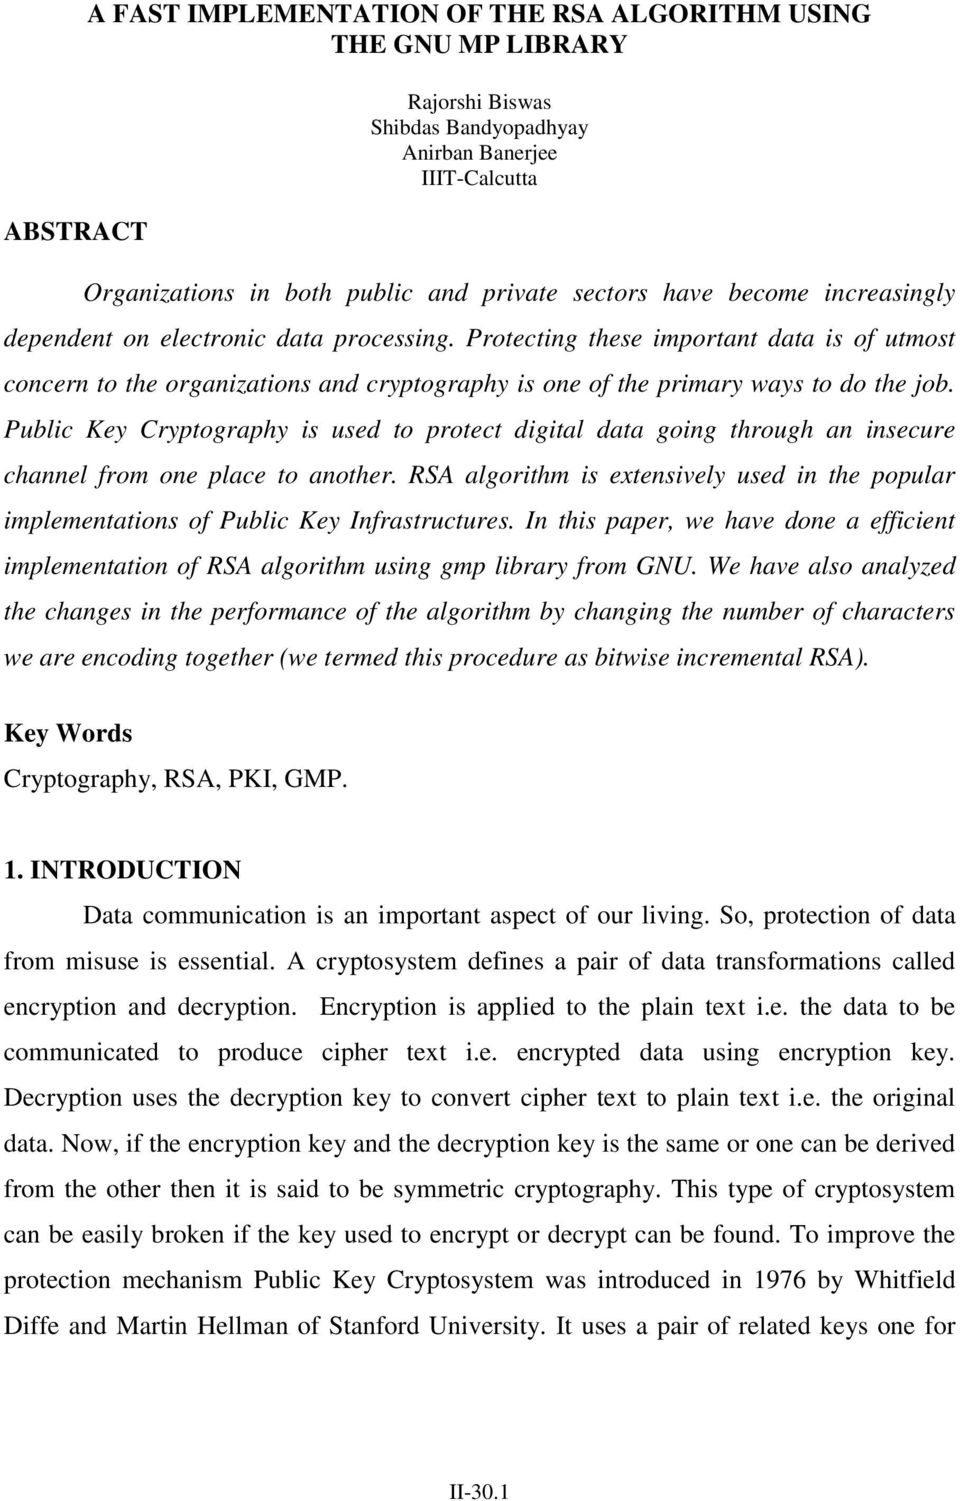 public key cryptography principles pdf